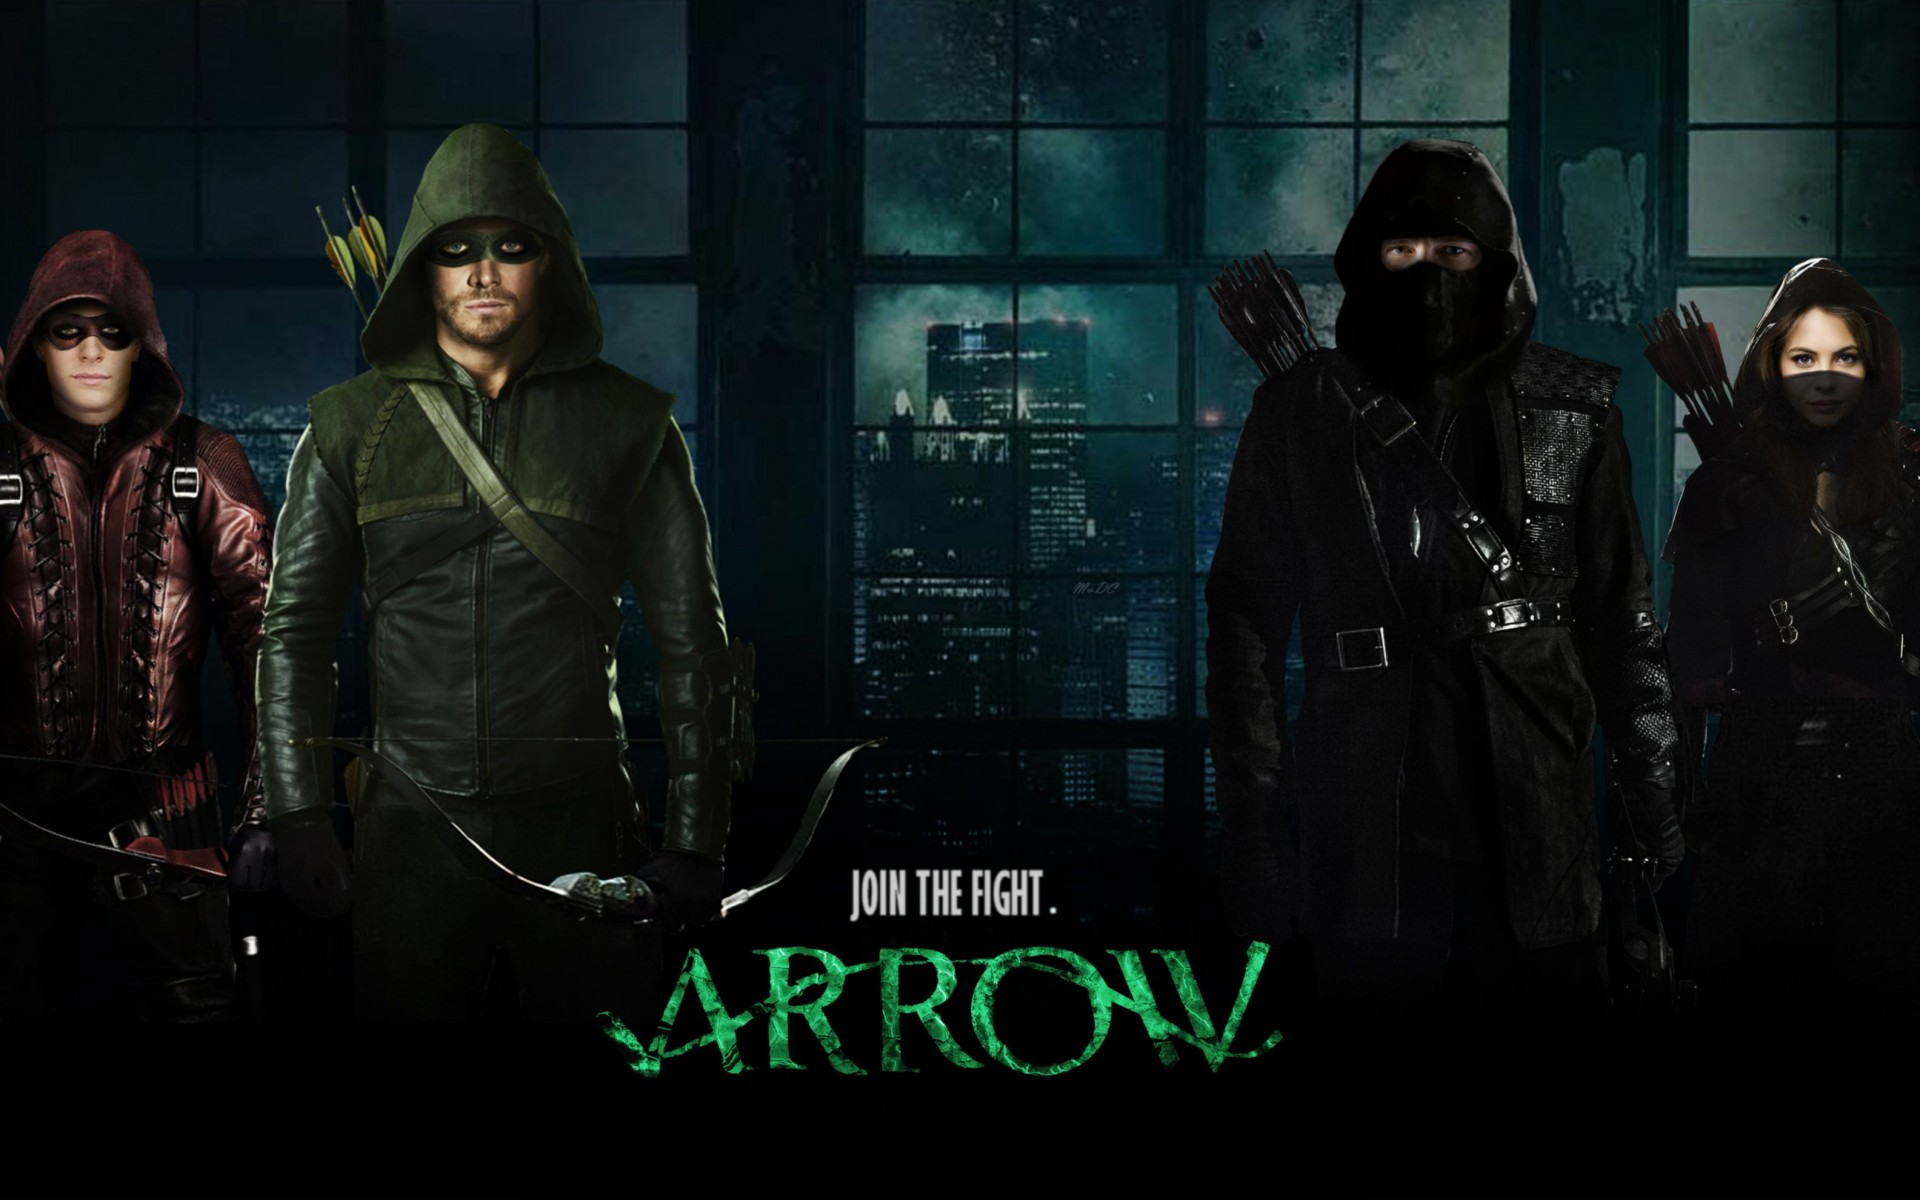 Arrow Season 3 2014 Wide Wallpaper